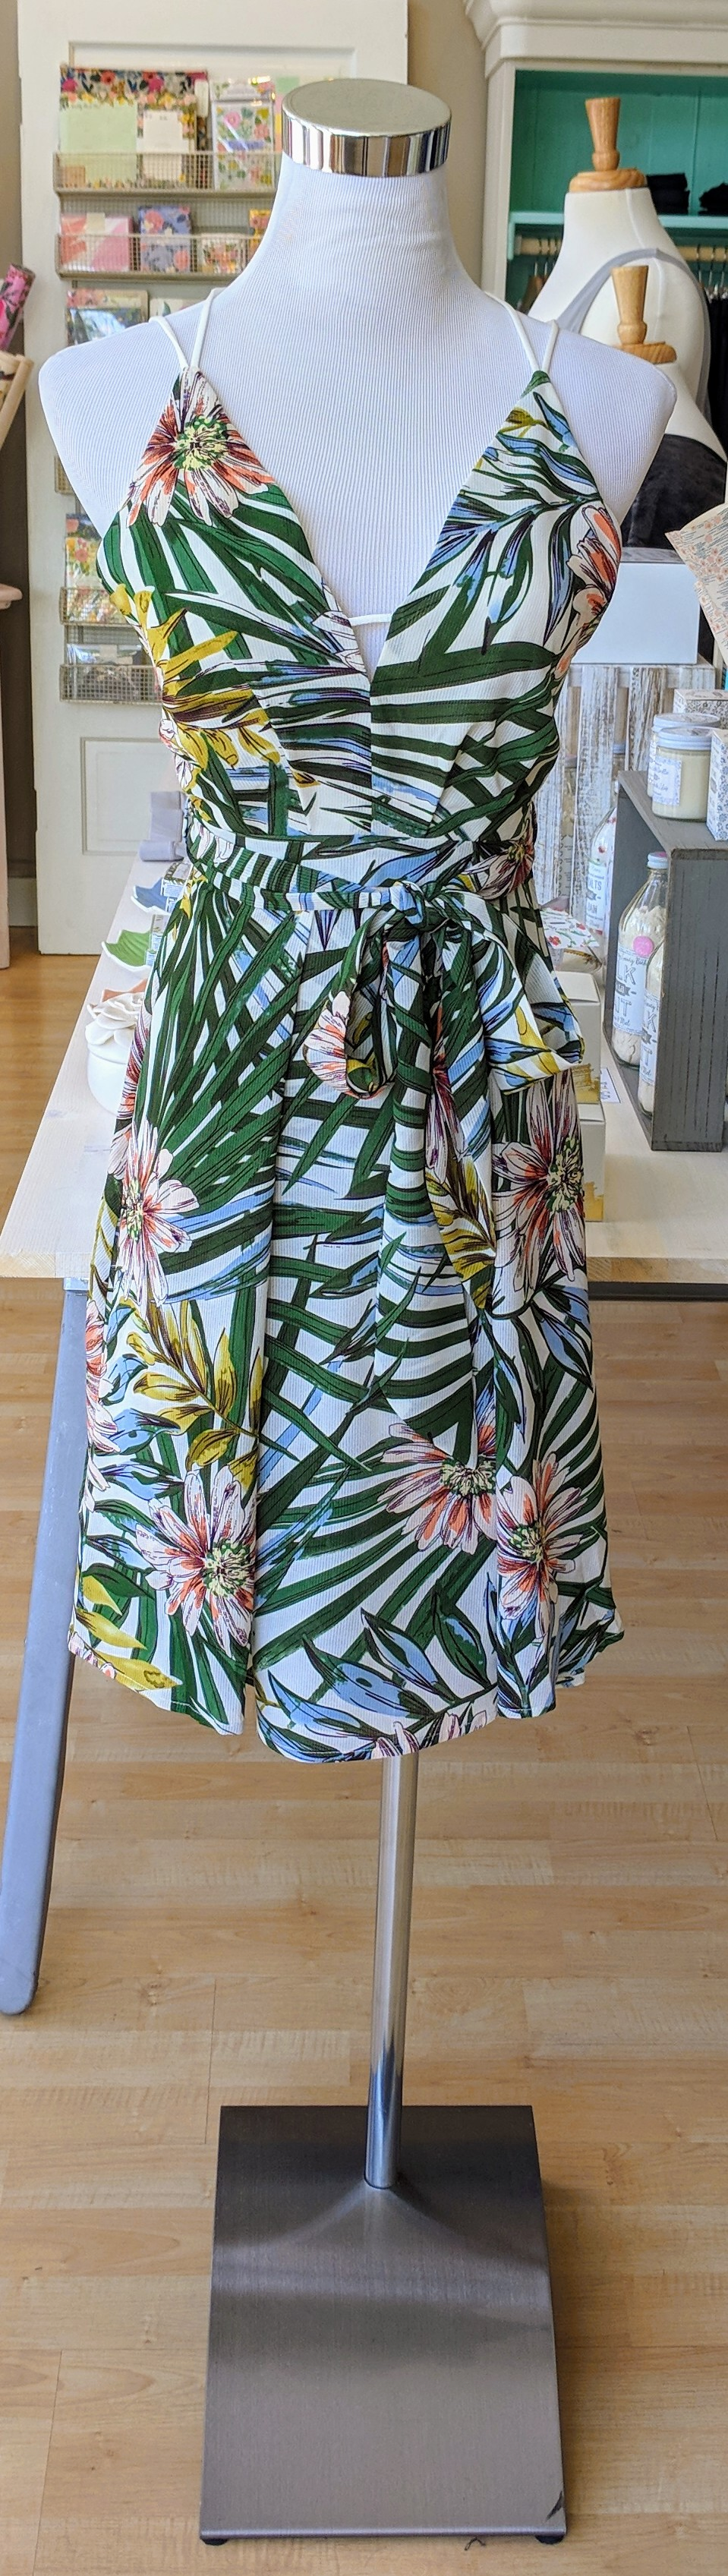 Tropical mini dress with X-strap on back.